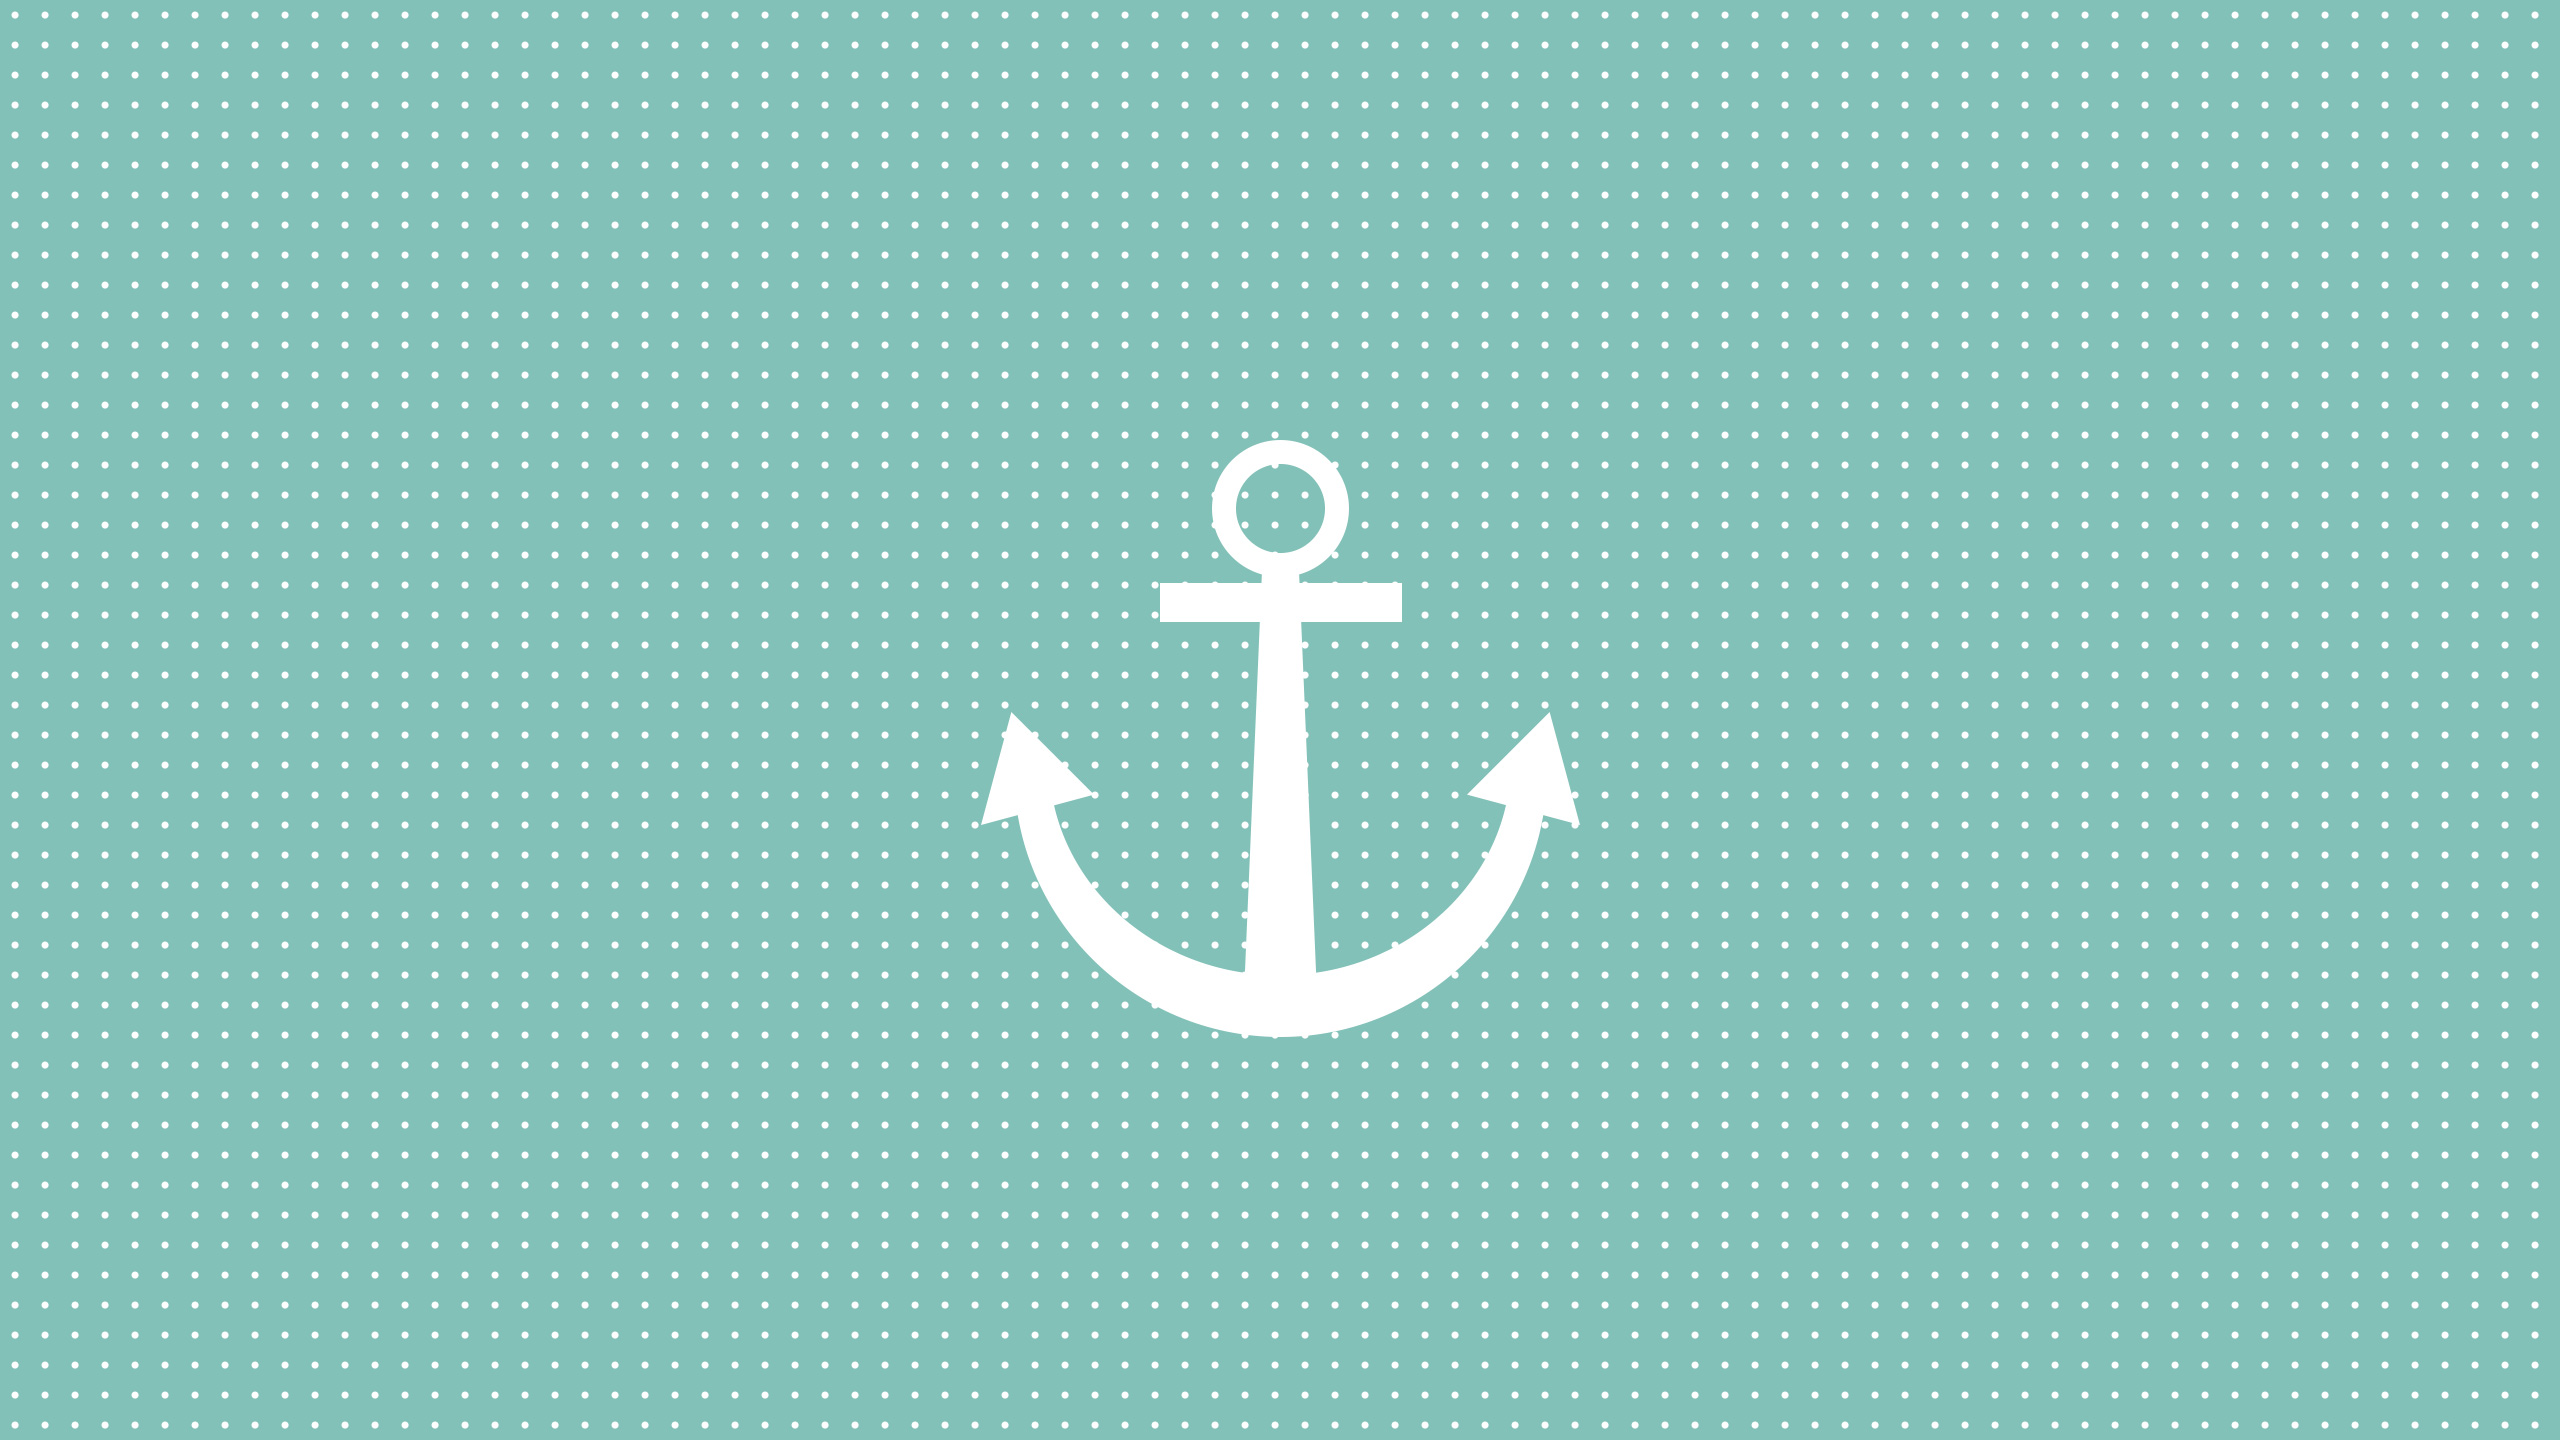 anchor desktop wallpapers - download free wallpapers today